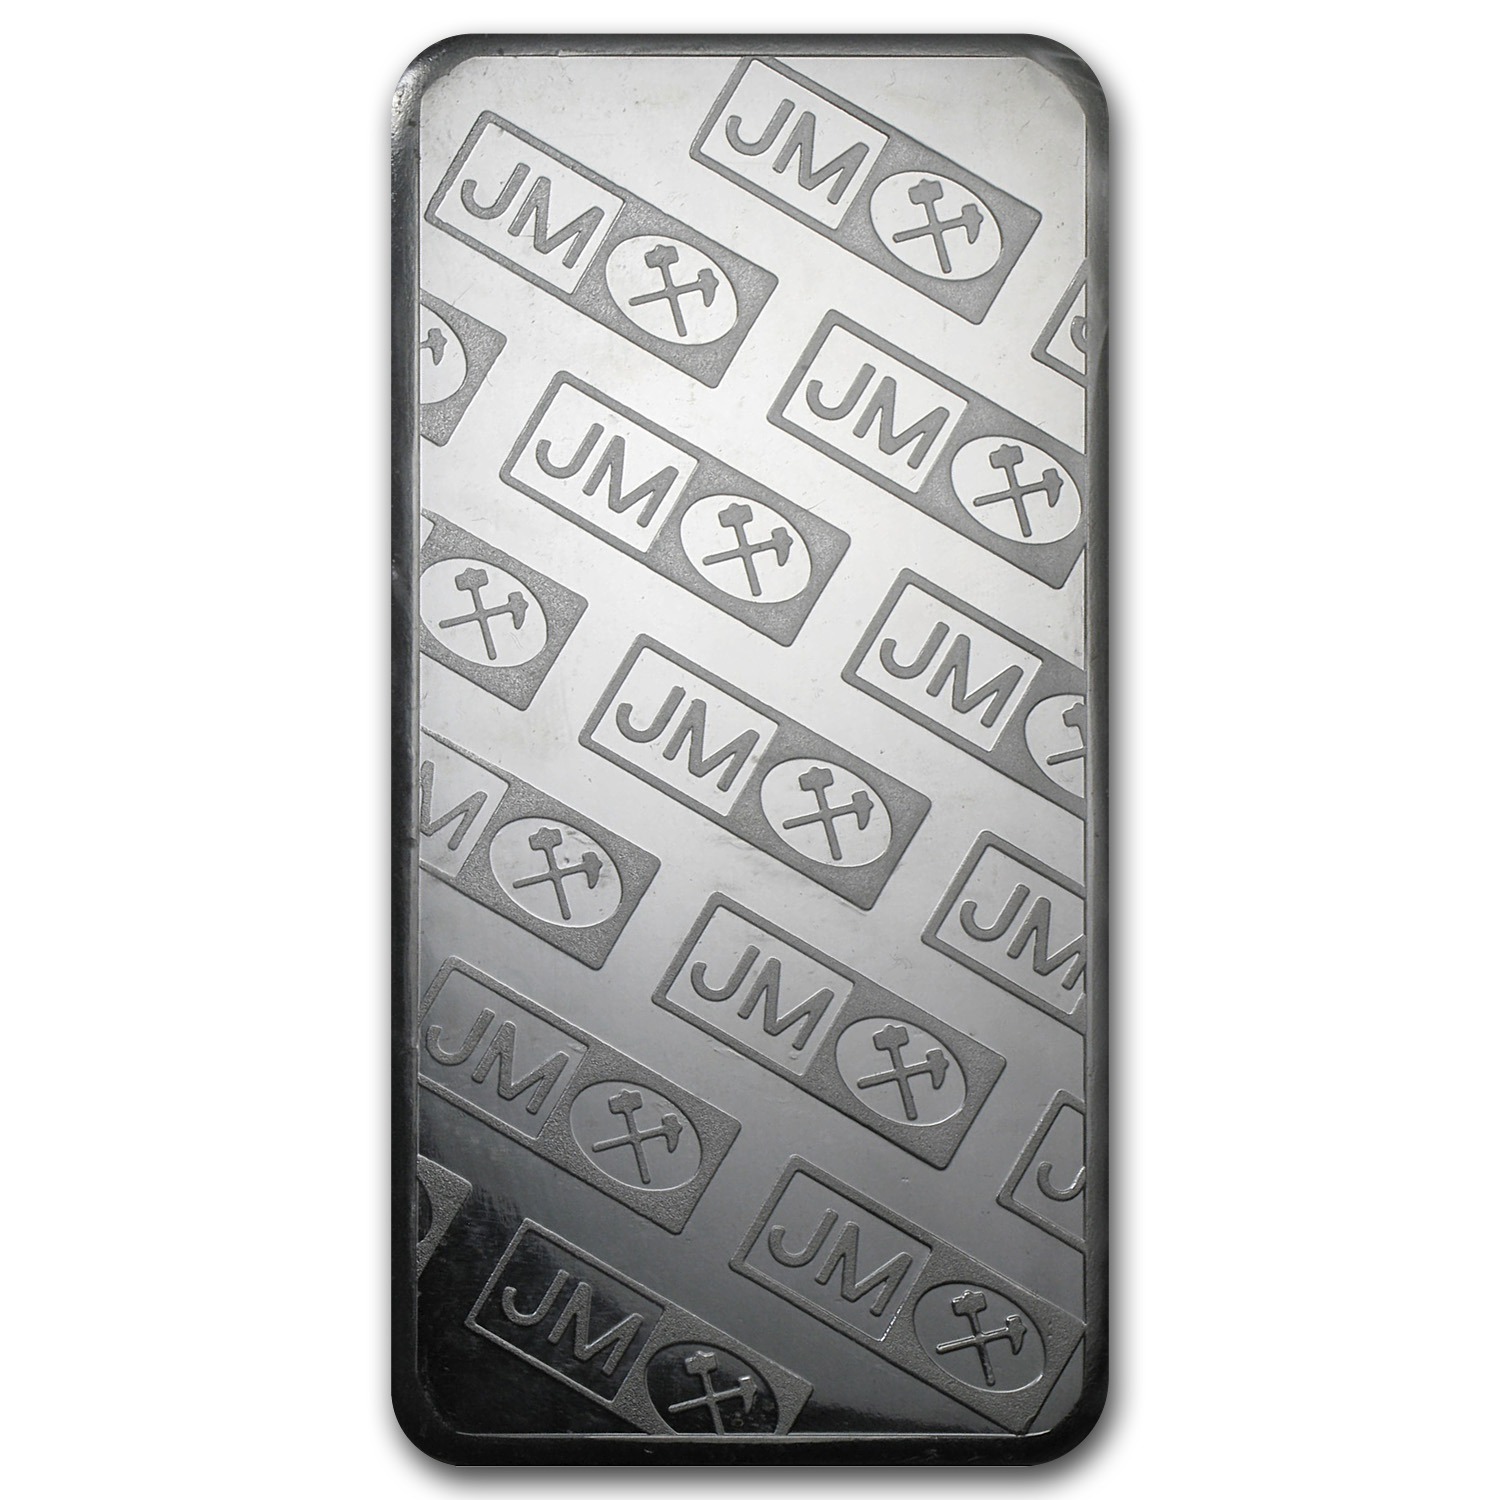 10 oz Silver Bars - Johnson Matthey (Sealed/Very Nice)